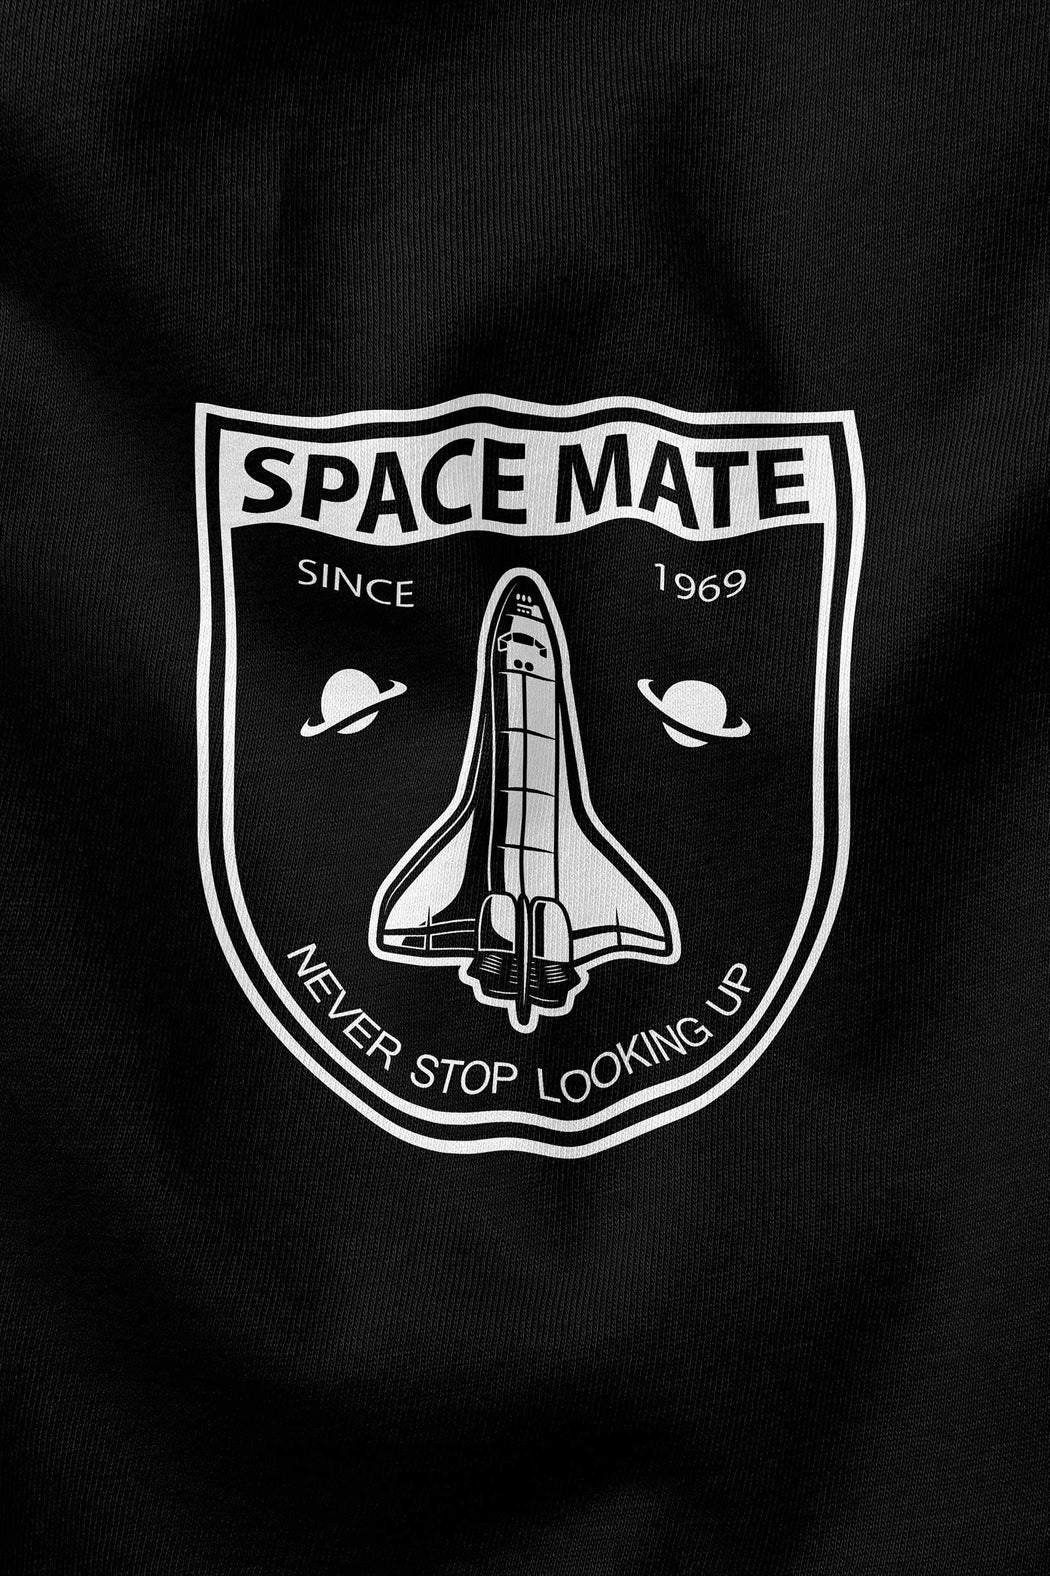 Space Mate